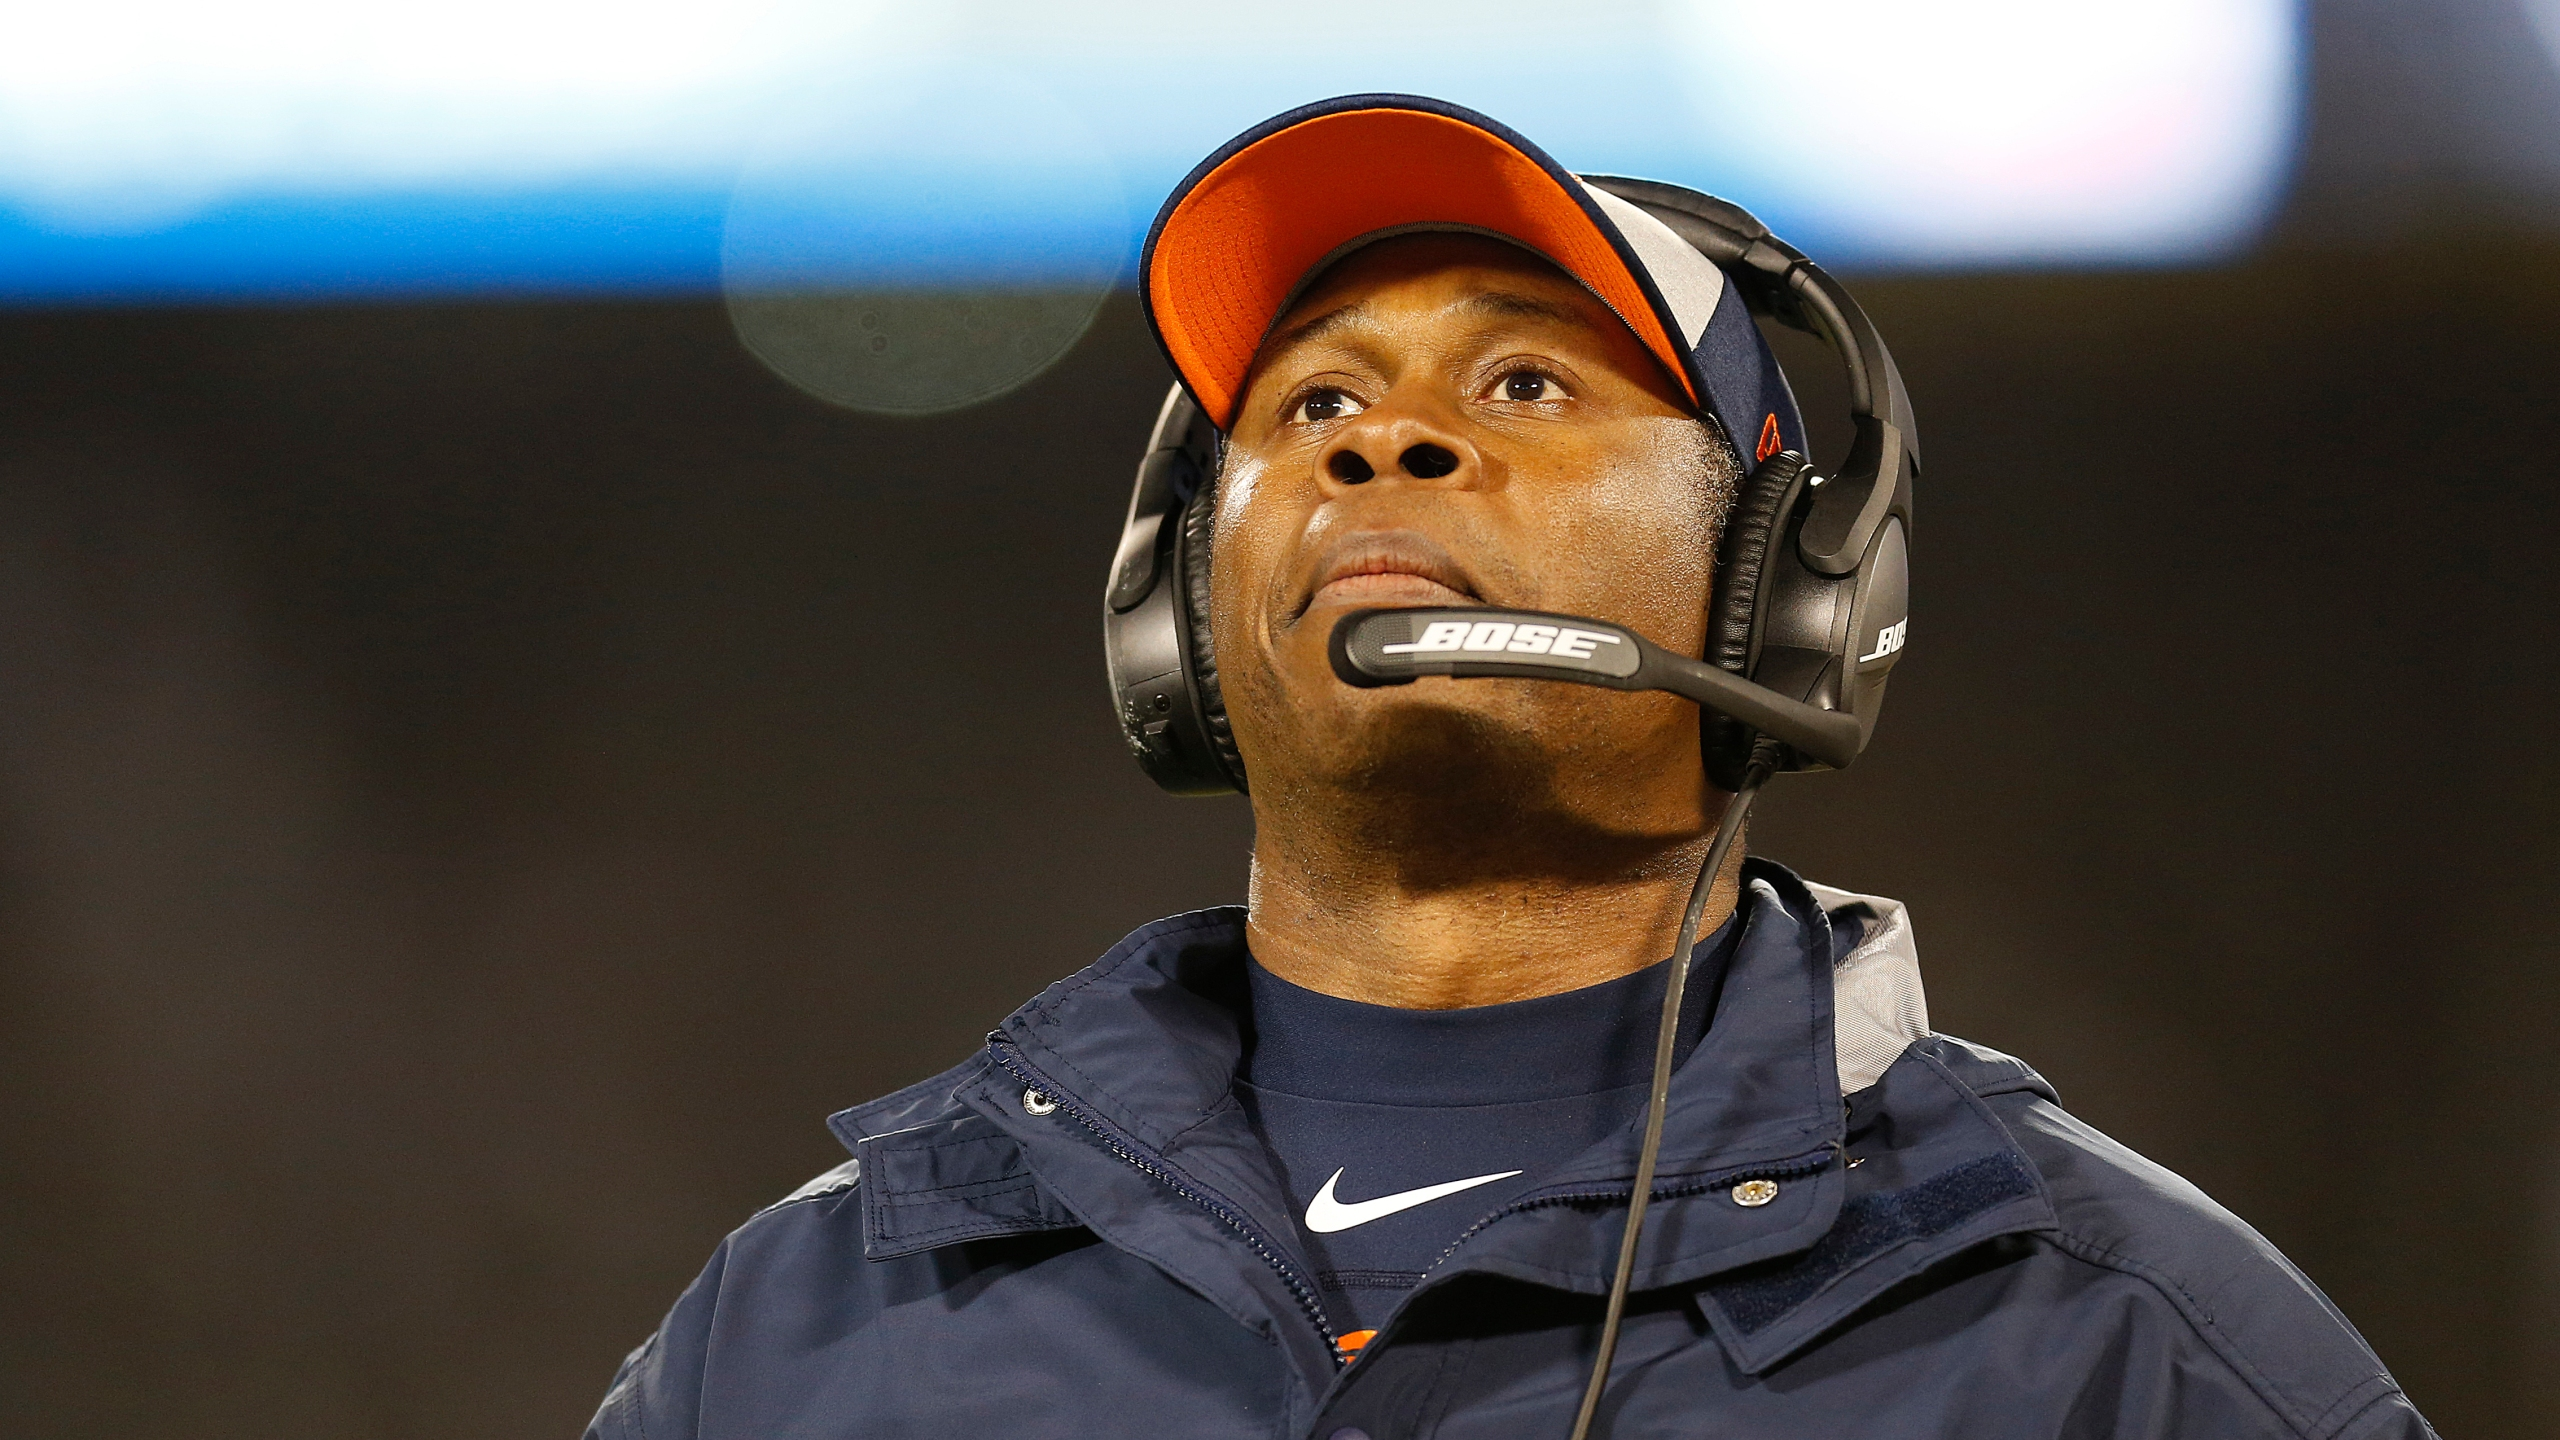 Denver Broncos head coach Vance Joseph watches during the second half of an NFL football game against the Oakland Raiders in Oakland, Calif., Monday,